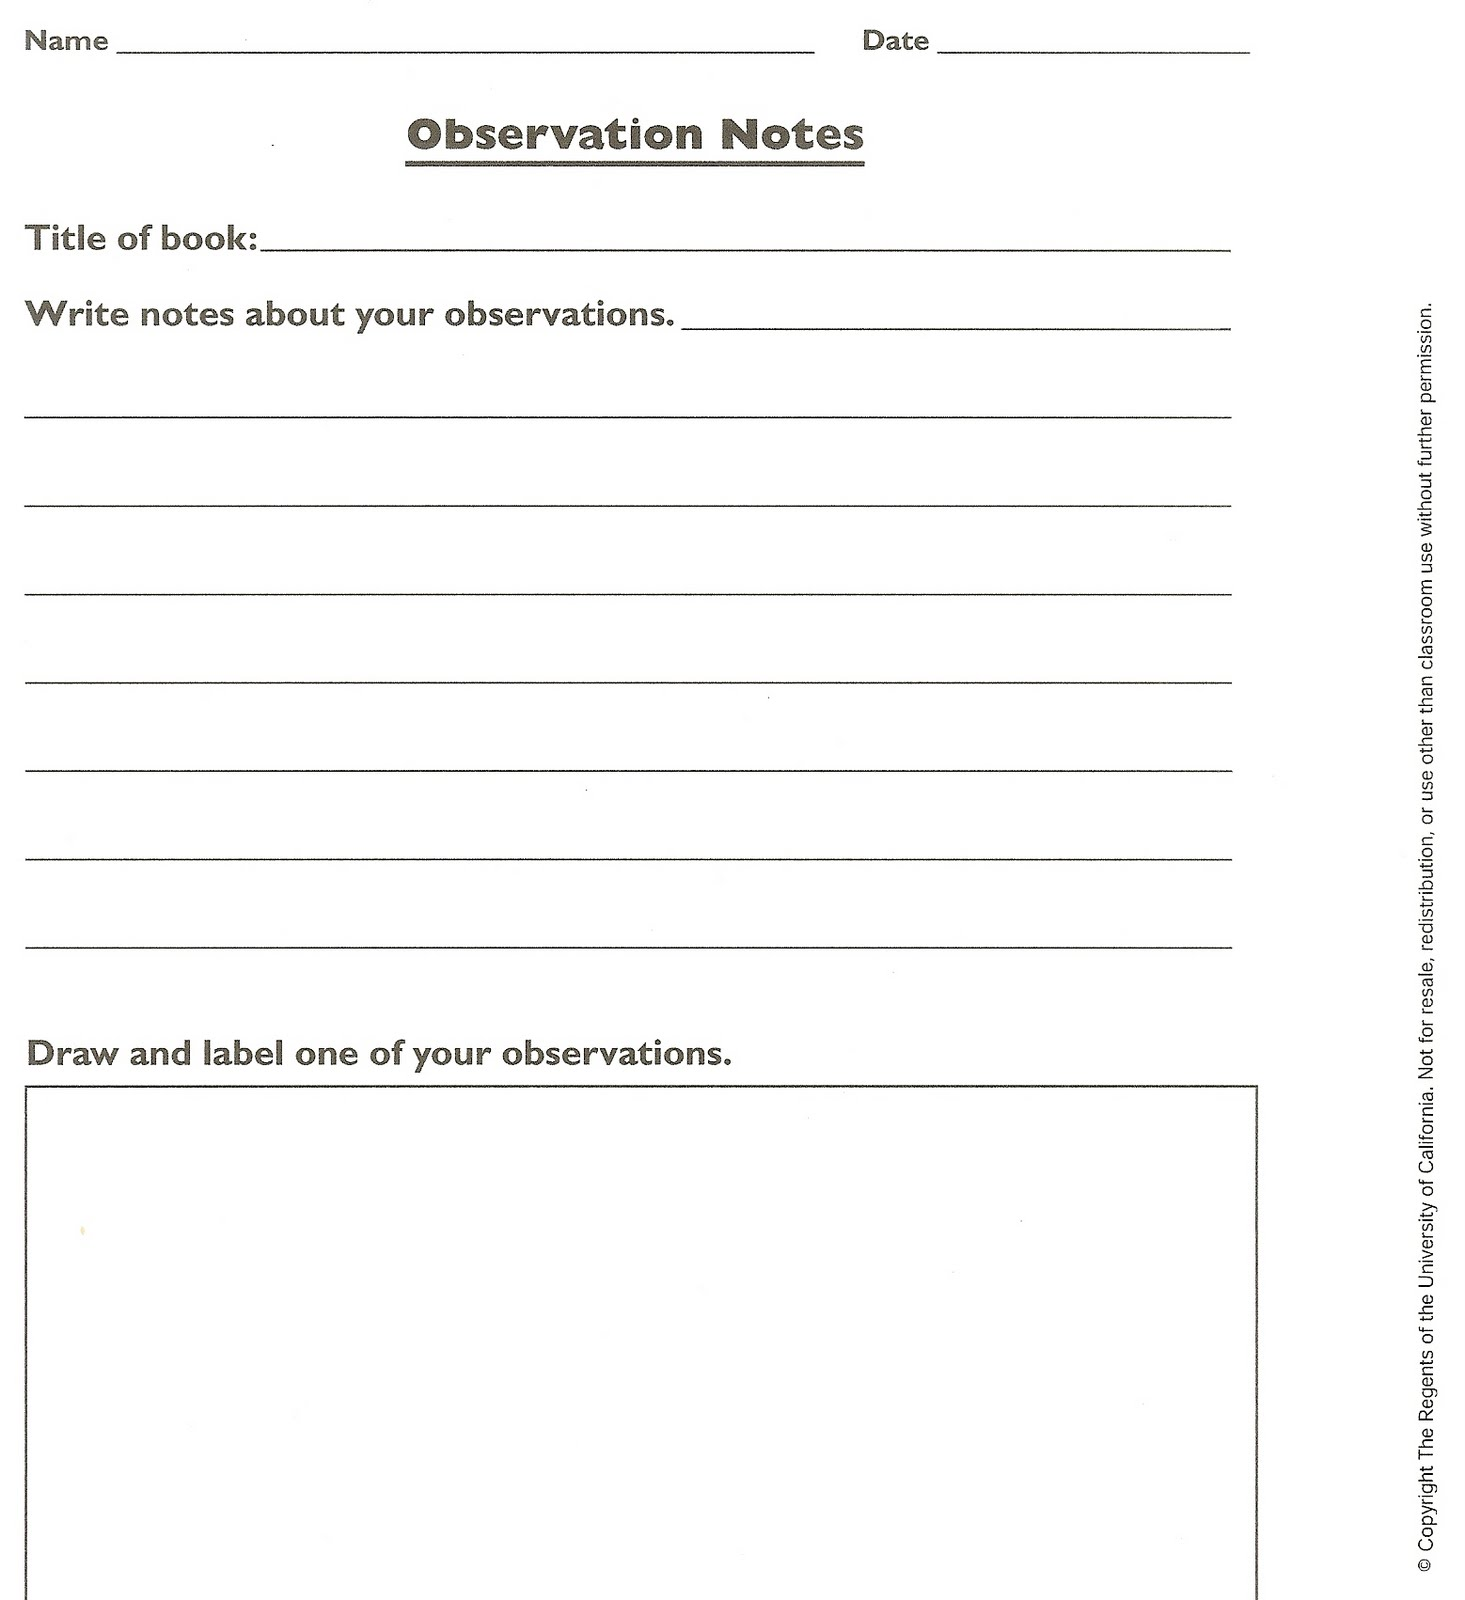 Science Gal Taking notes based on Observations – Observation Worksheet